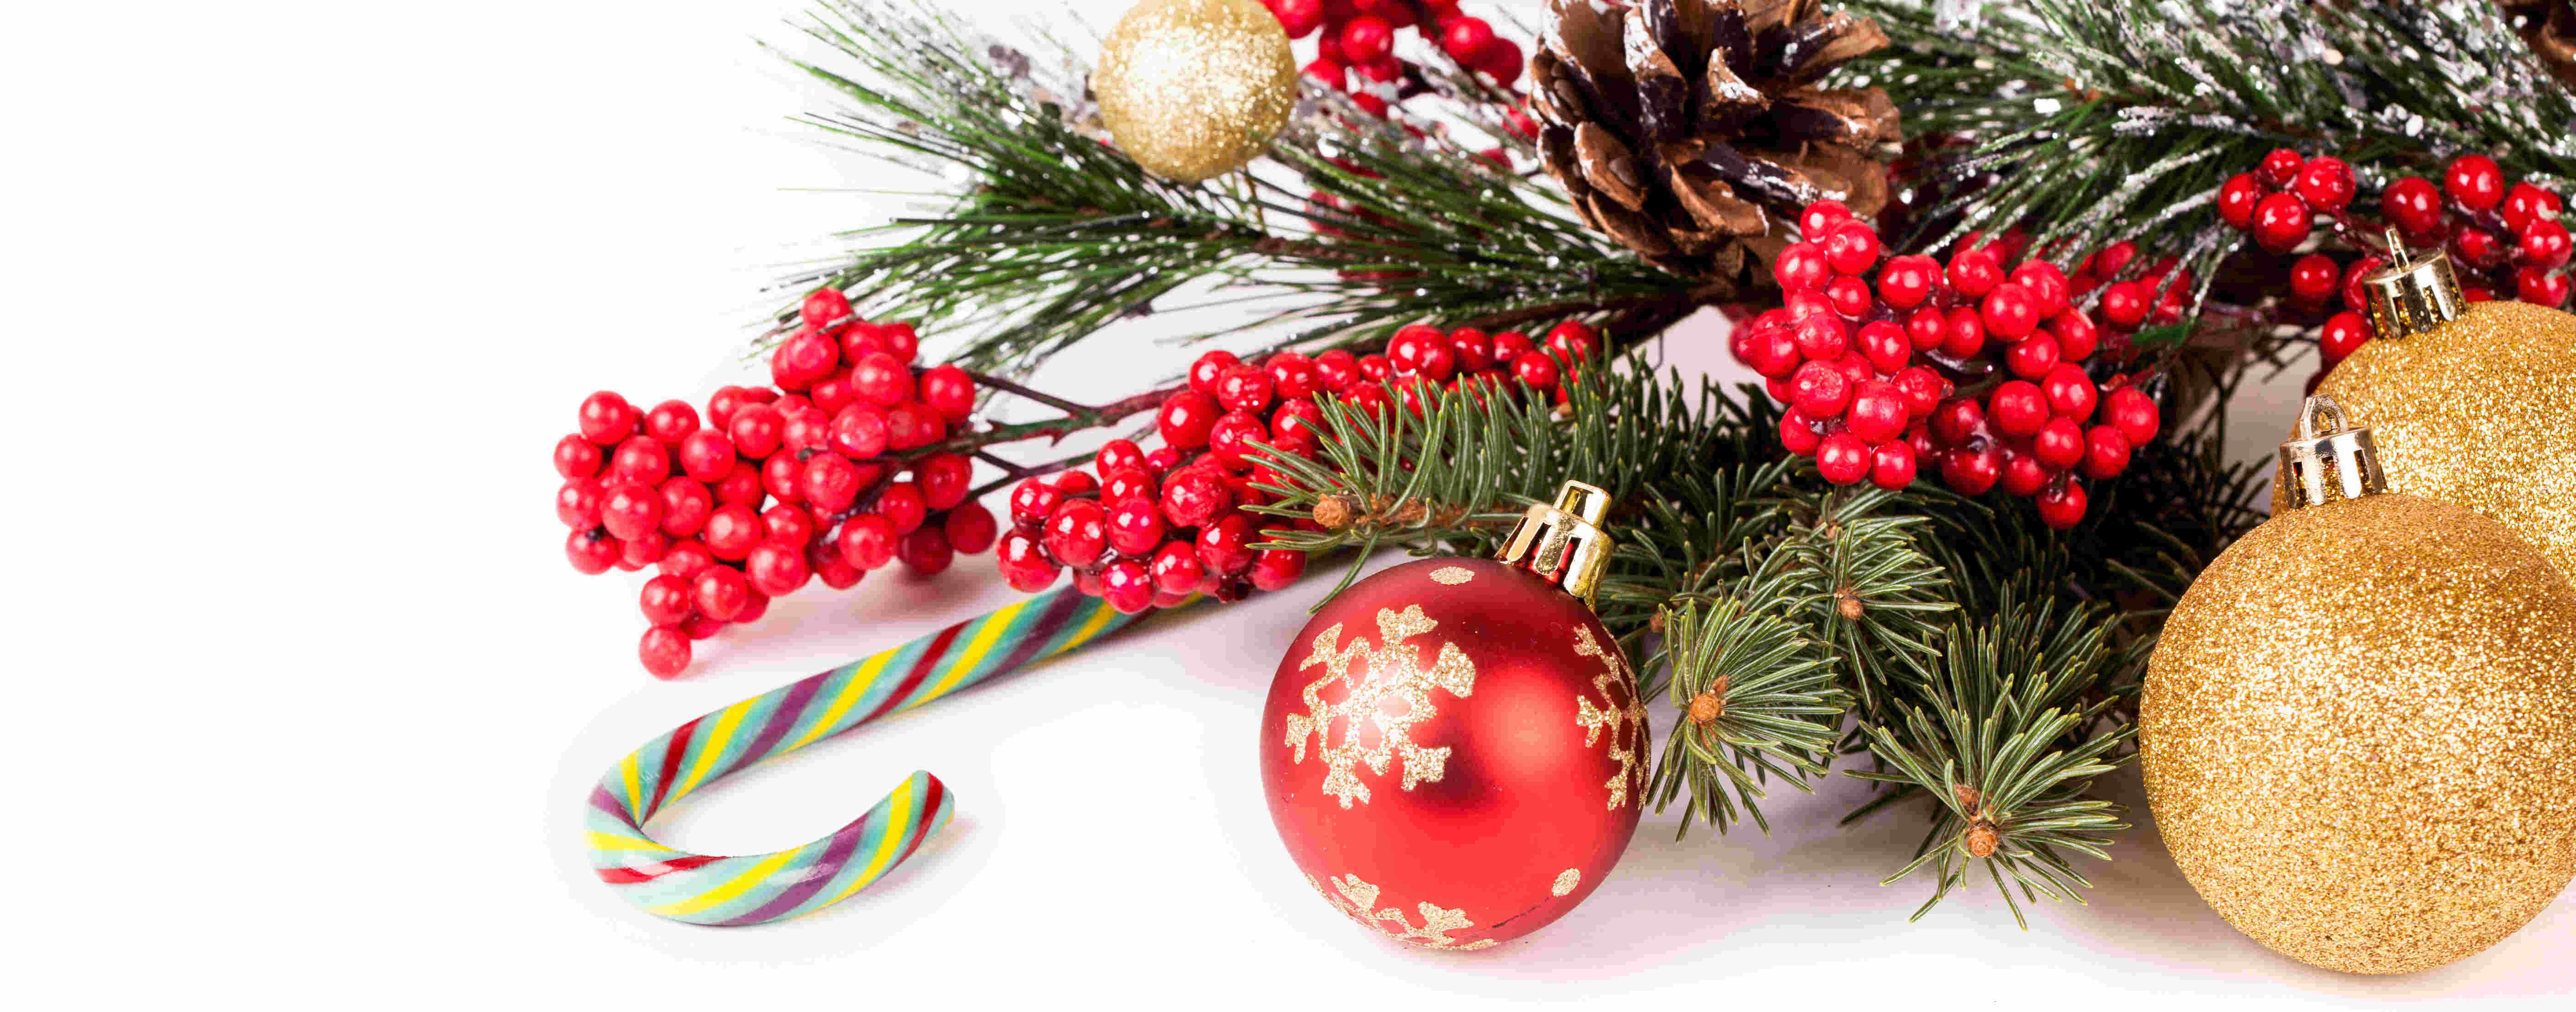 Christmas Background With A Red Ornament Studio Shot